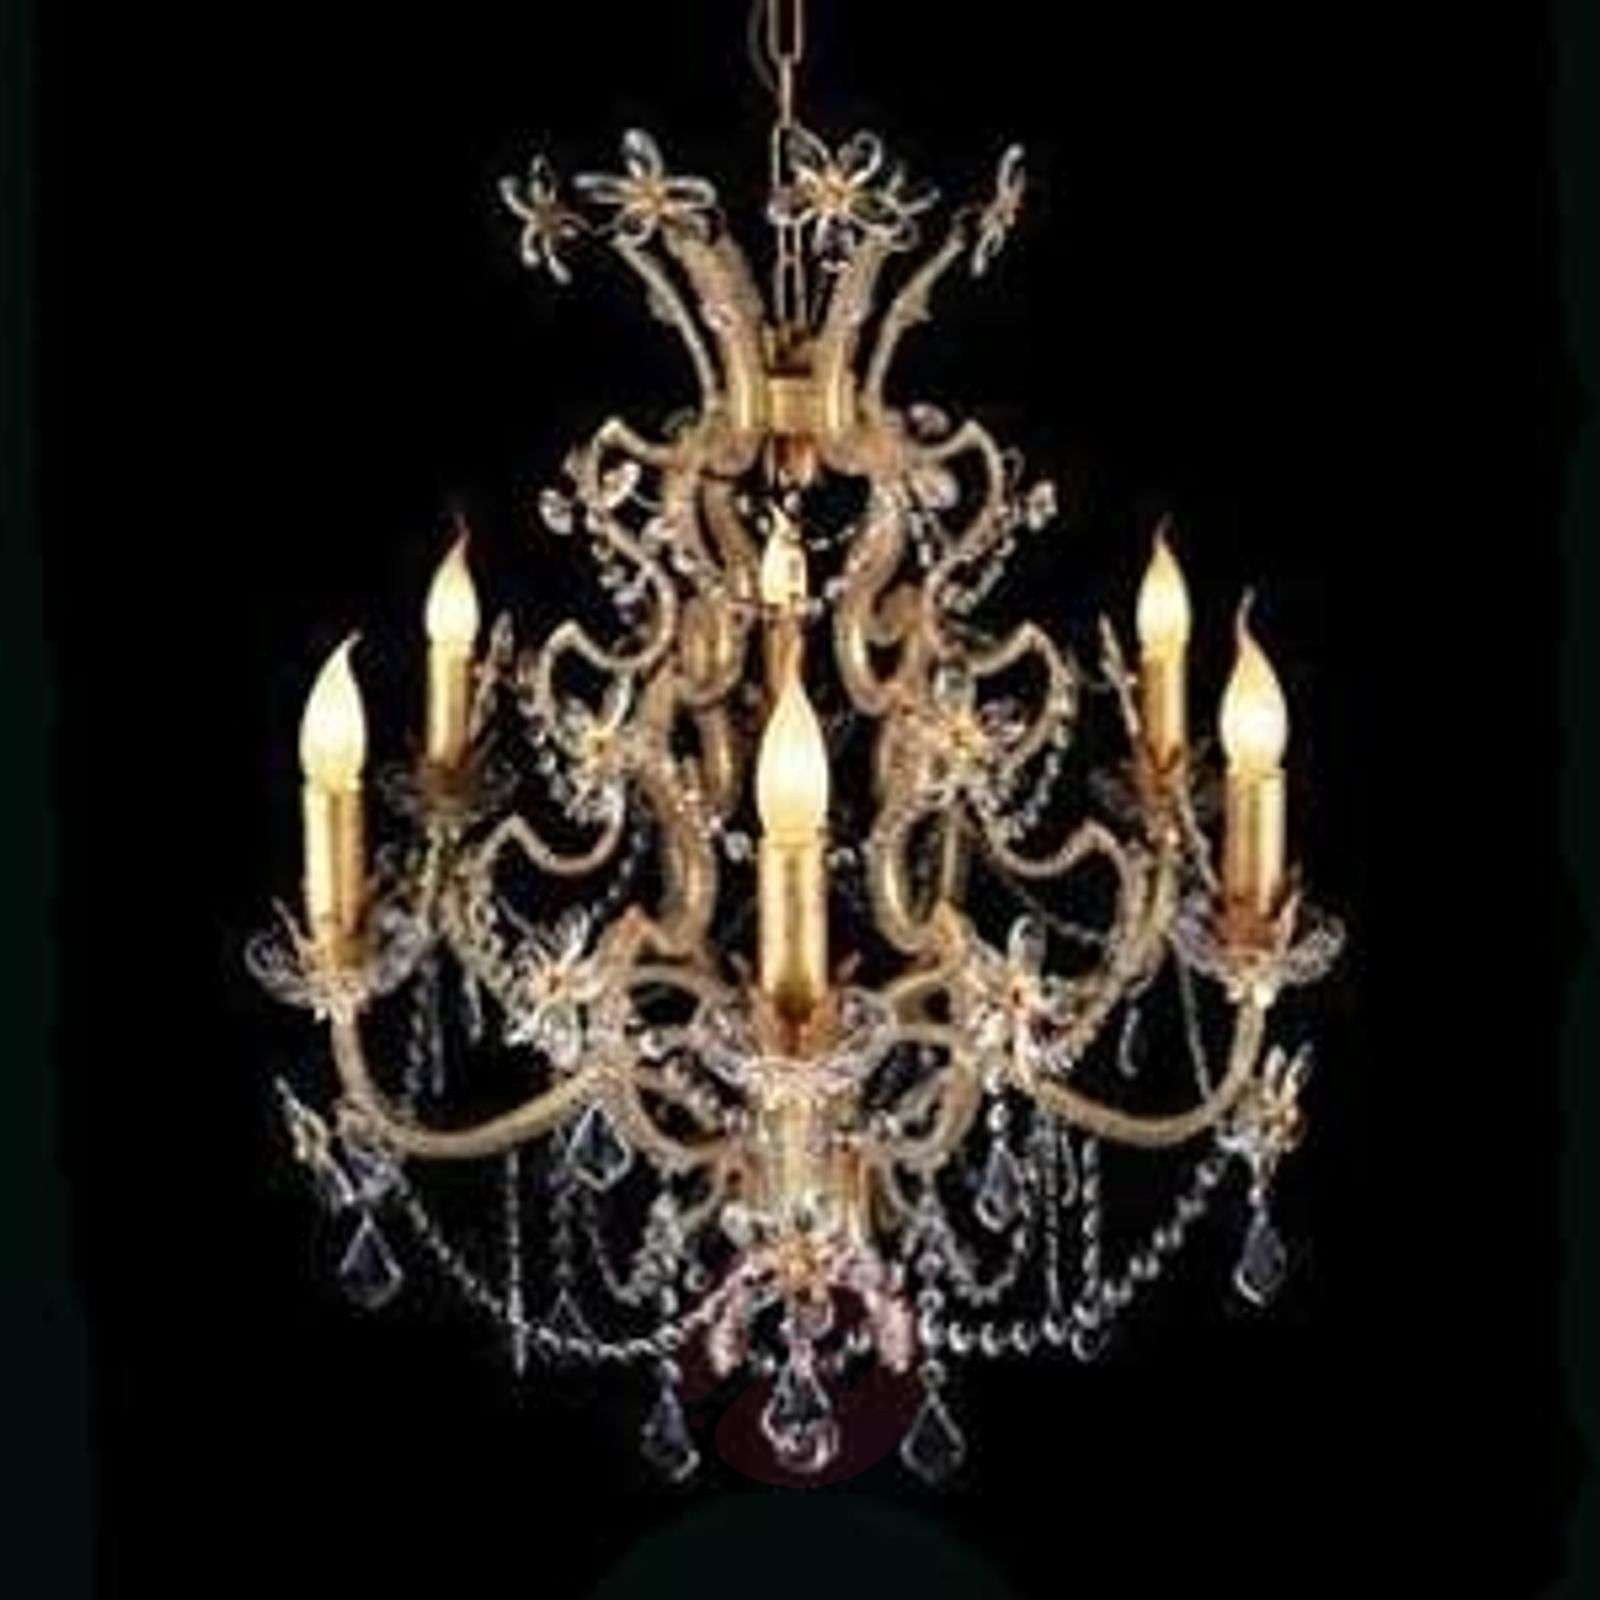 BENETTA chandelier, rich in details, 6-bulb-1032224-01